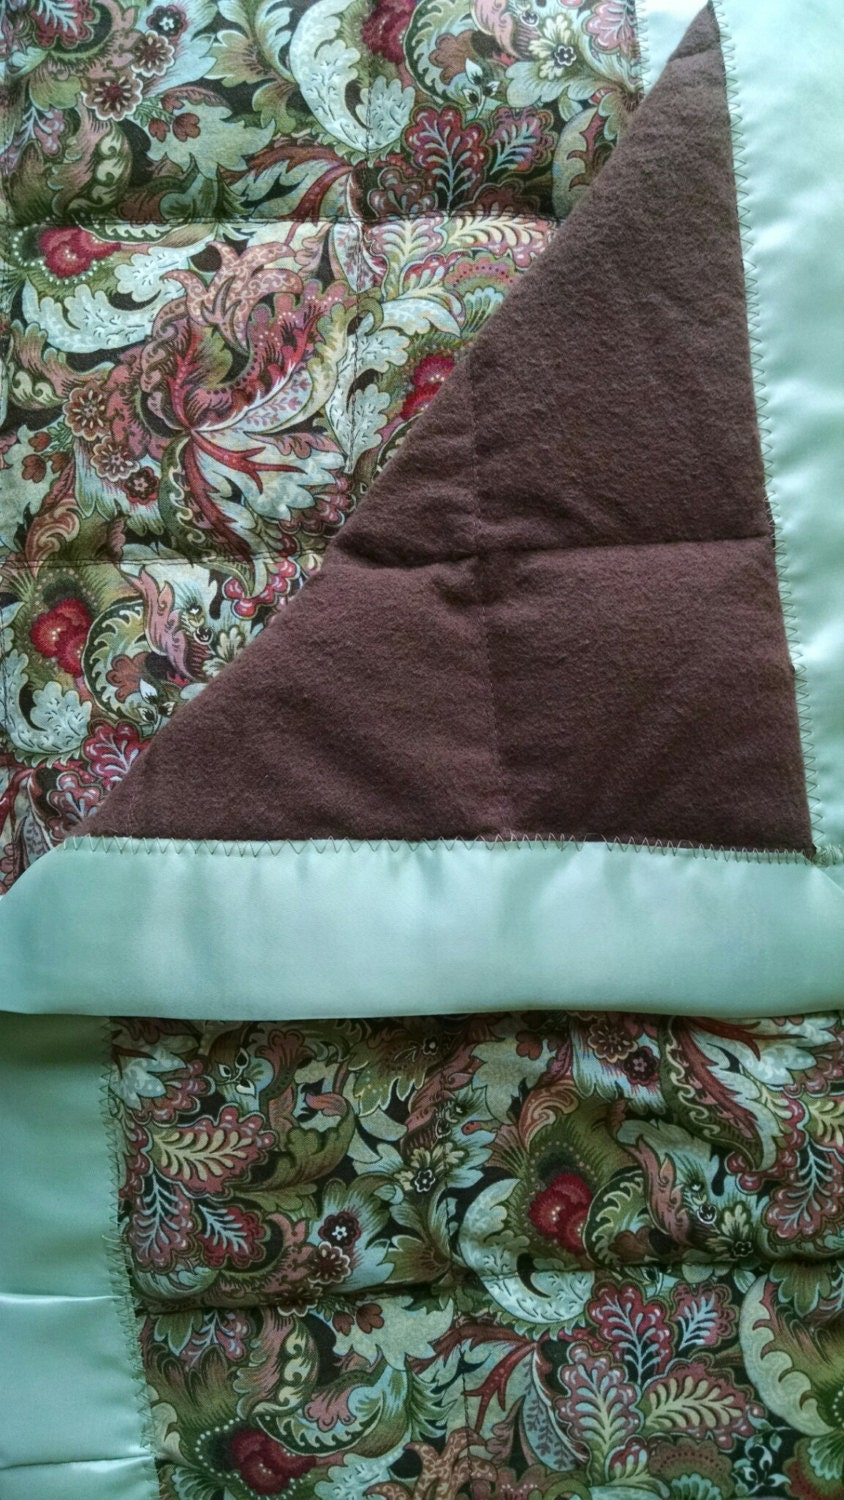 8 Lb Child Or Adult Lap Weighted Blanket By Comforthugs On